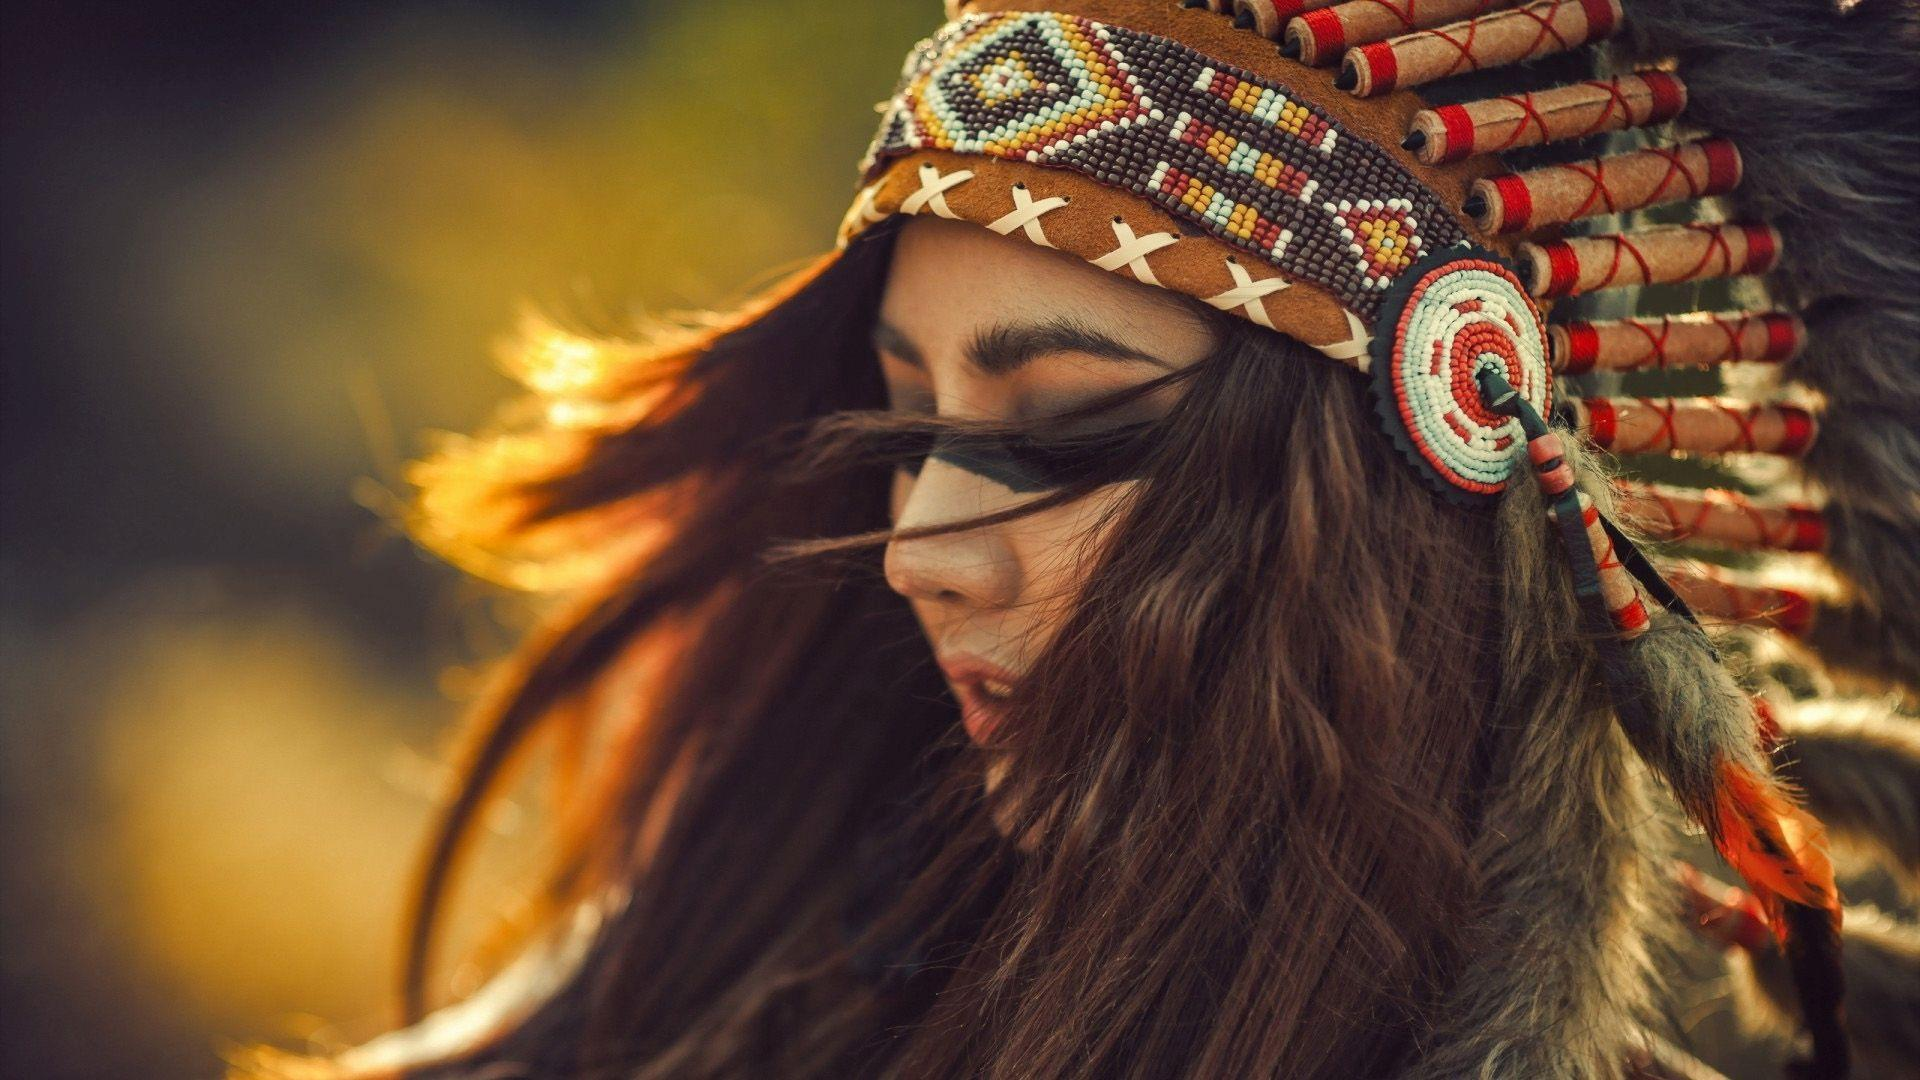 native american wallpaper fox - photo #22